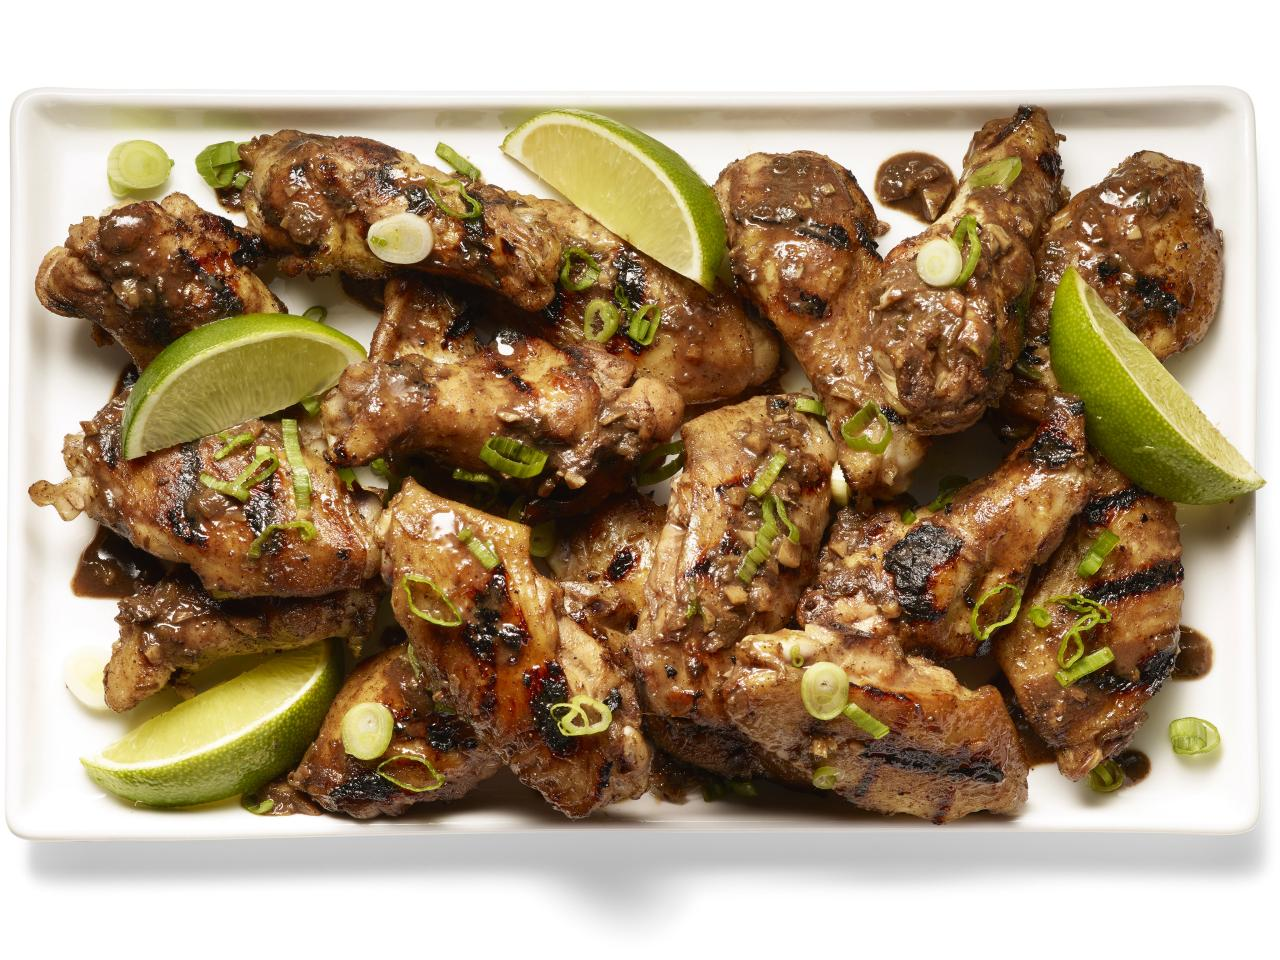 FNM_100115-Spicy-Rum-Chicken-Wings-Recipe_s4x3.jpg.rend.hgtvcom.1280.960.jpeg